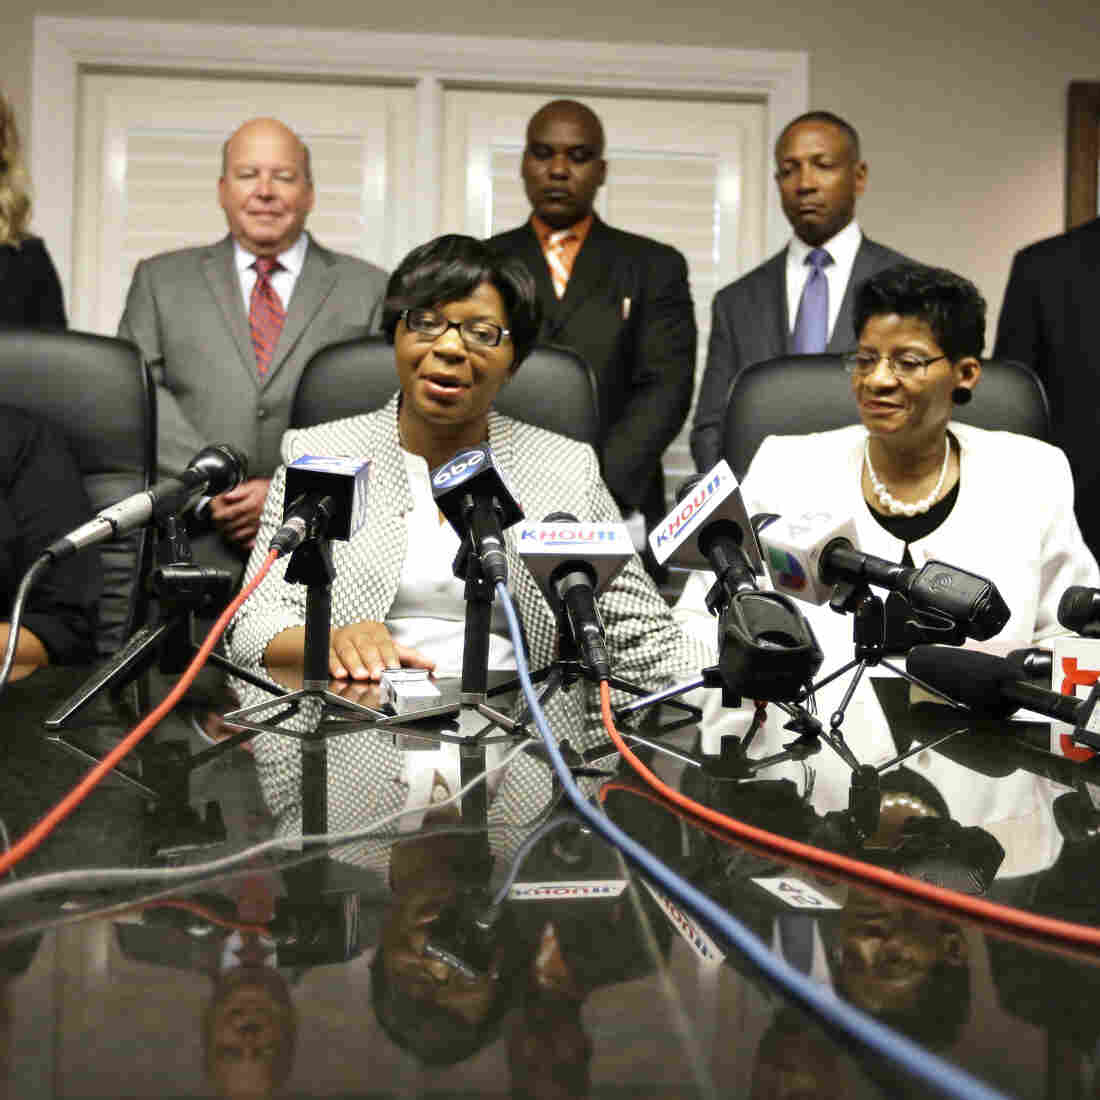 Family Of Sandra Bland Files Wrongful-Death Lawsuit